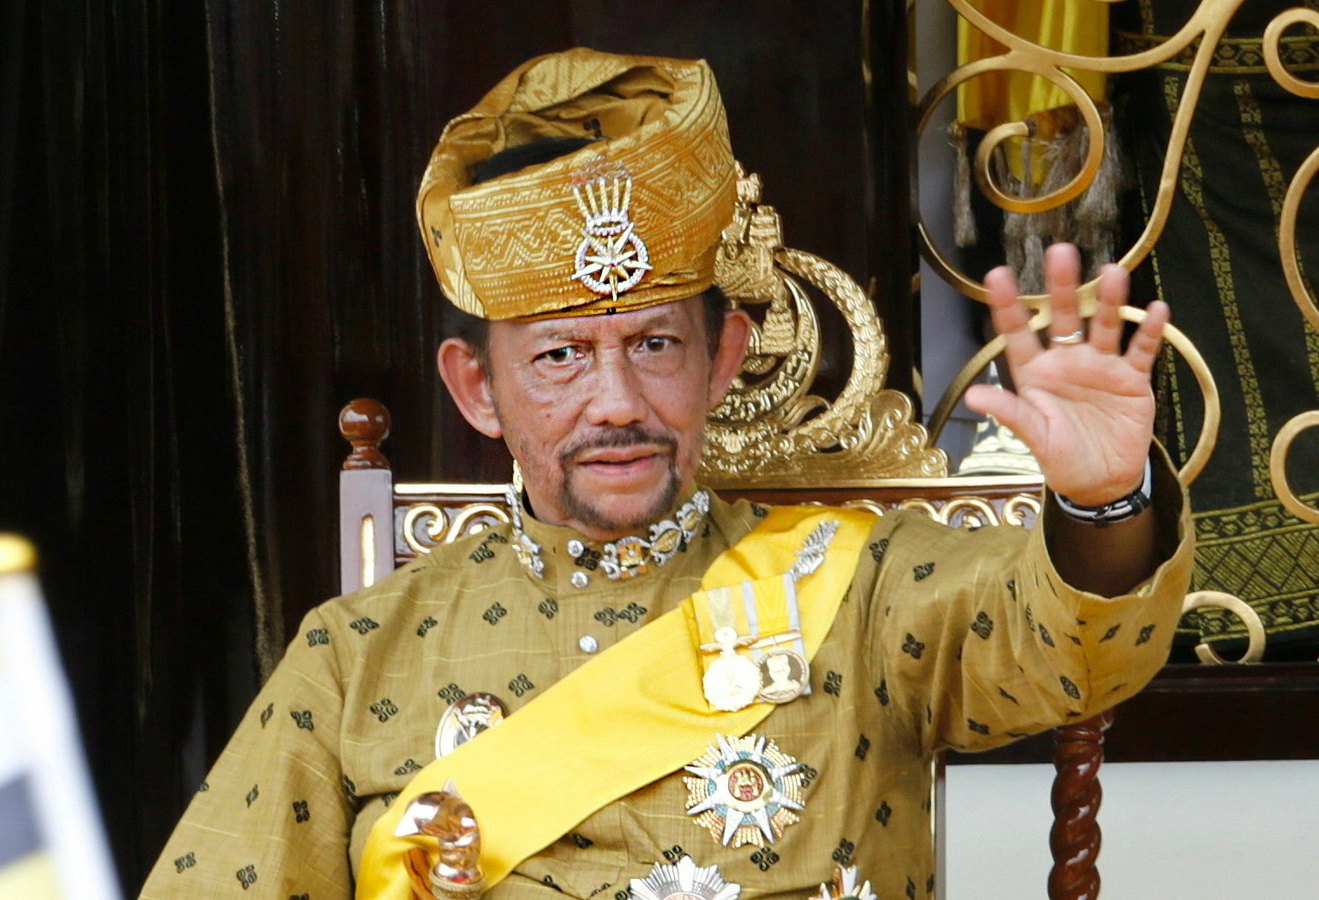 Gay Sexy And Adultery Punishable By Death by Stoning in Brunei